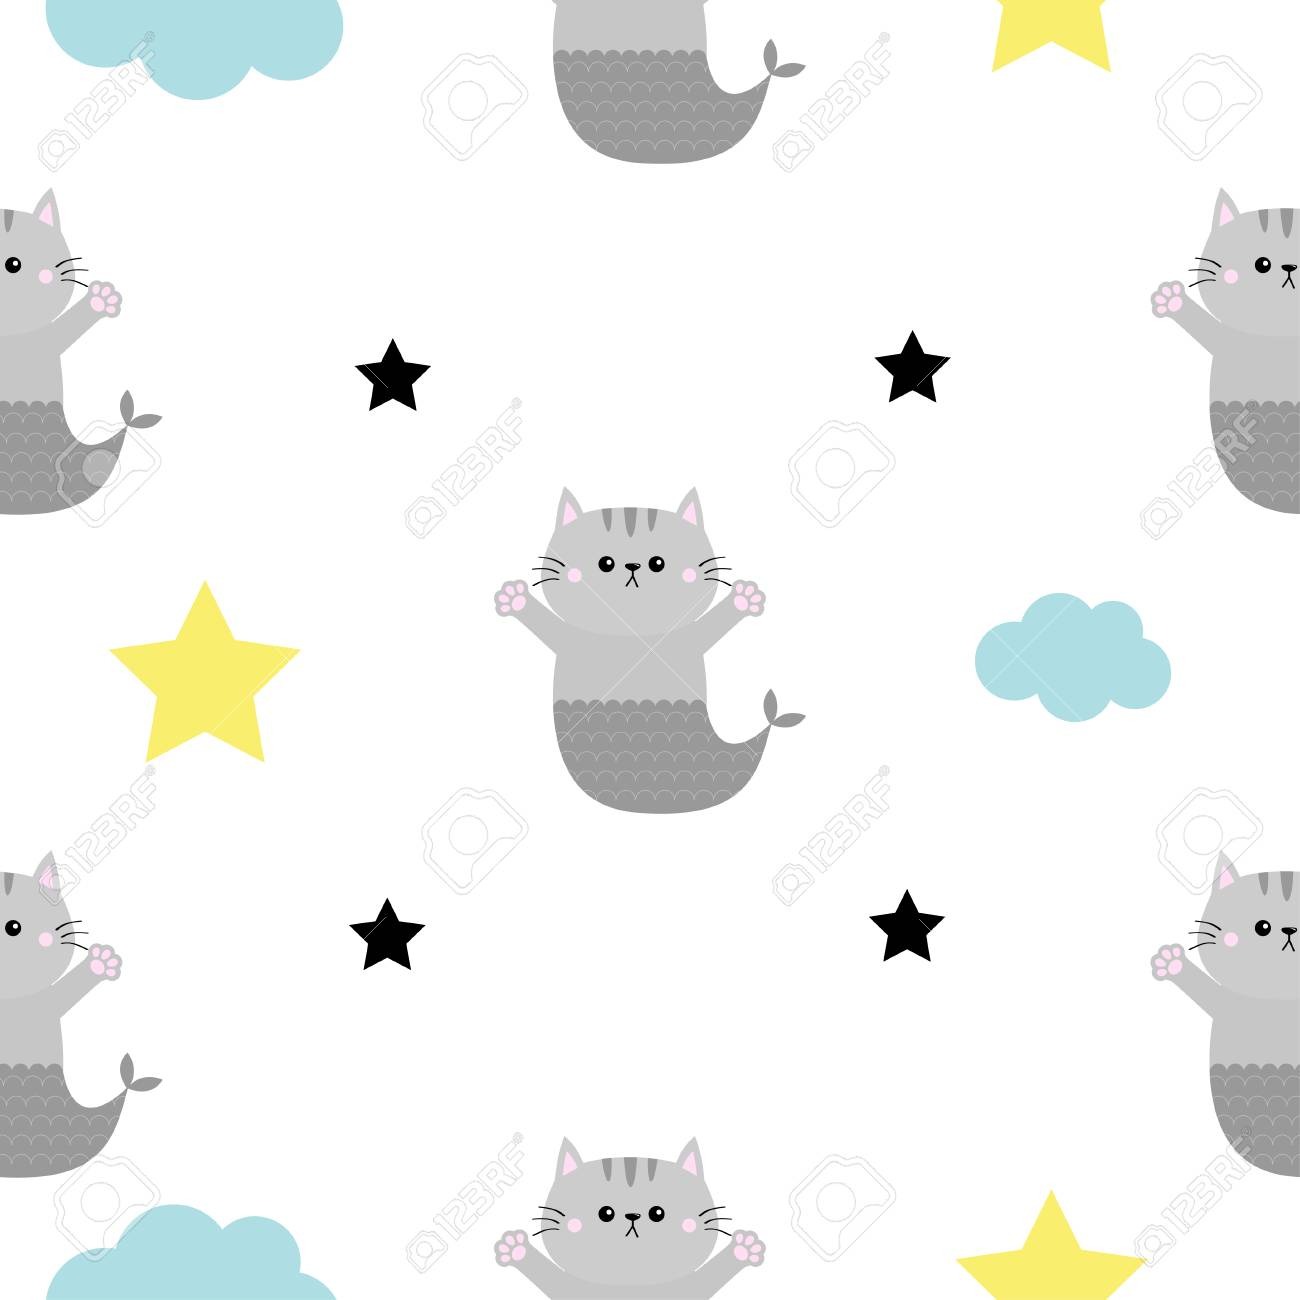 Cat Mermaid Fish Tail Head Hands Cloud Star Shape Cute Cartoon